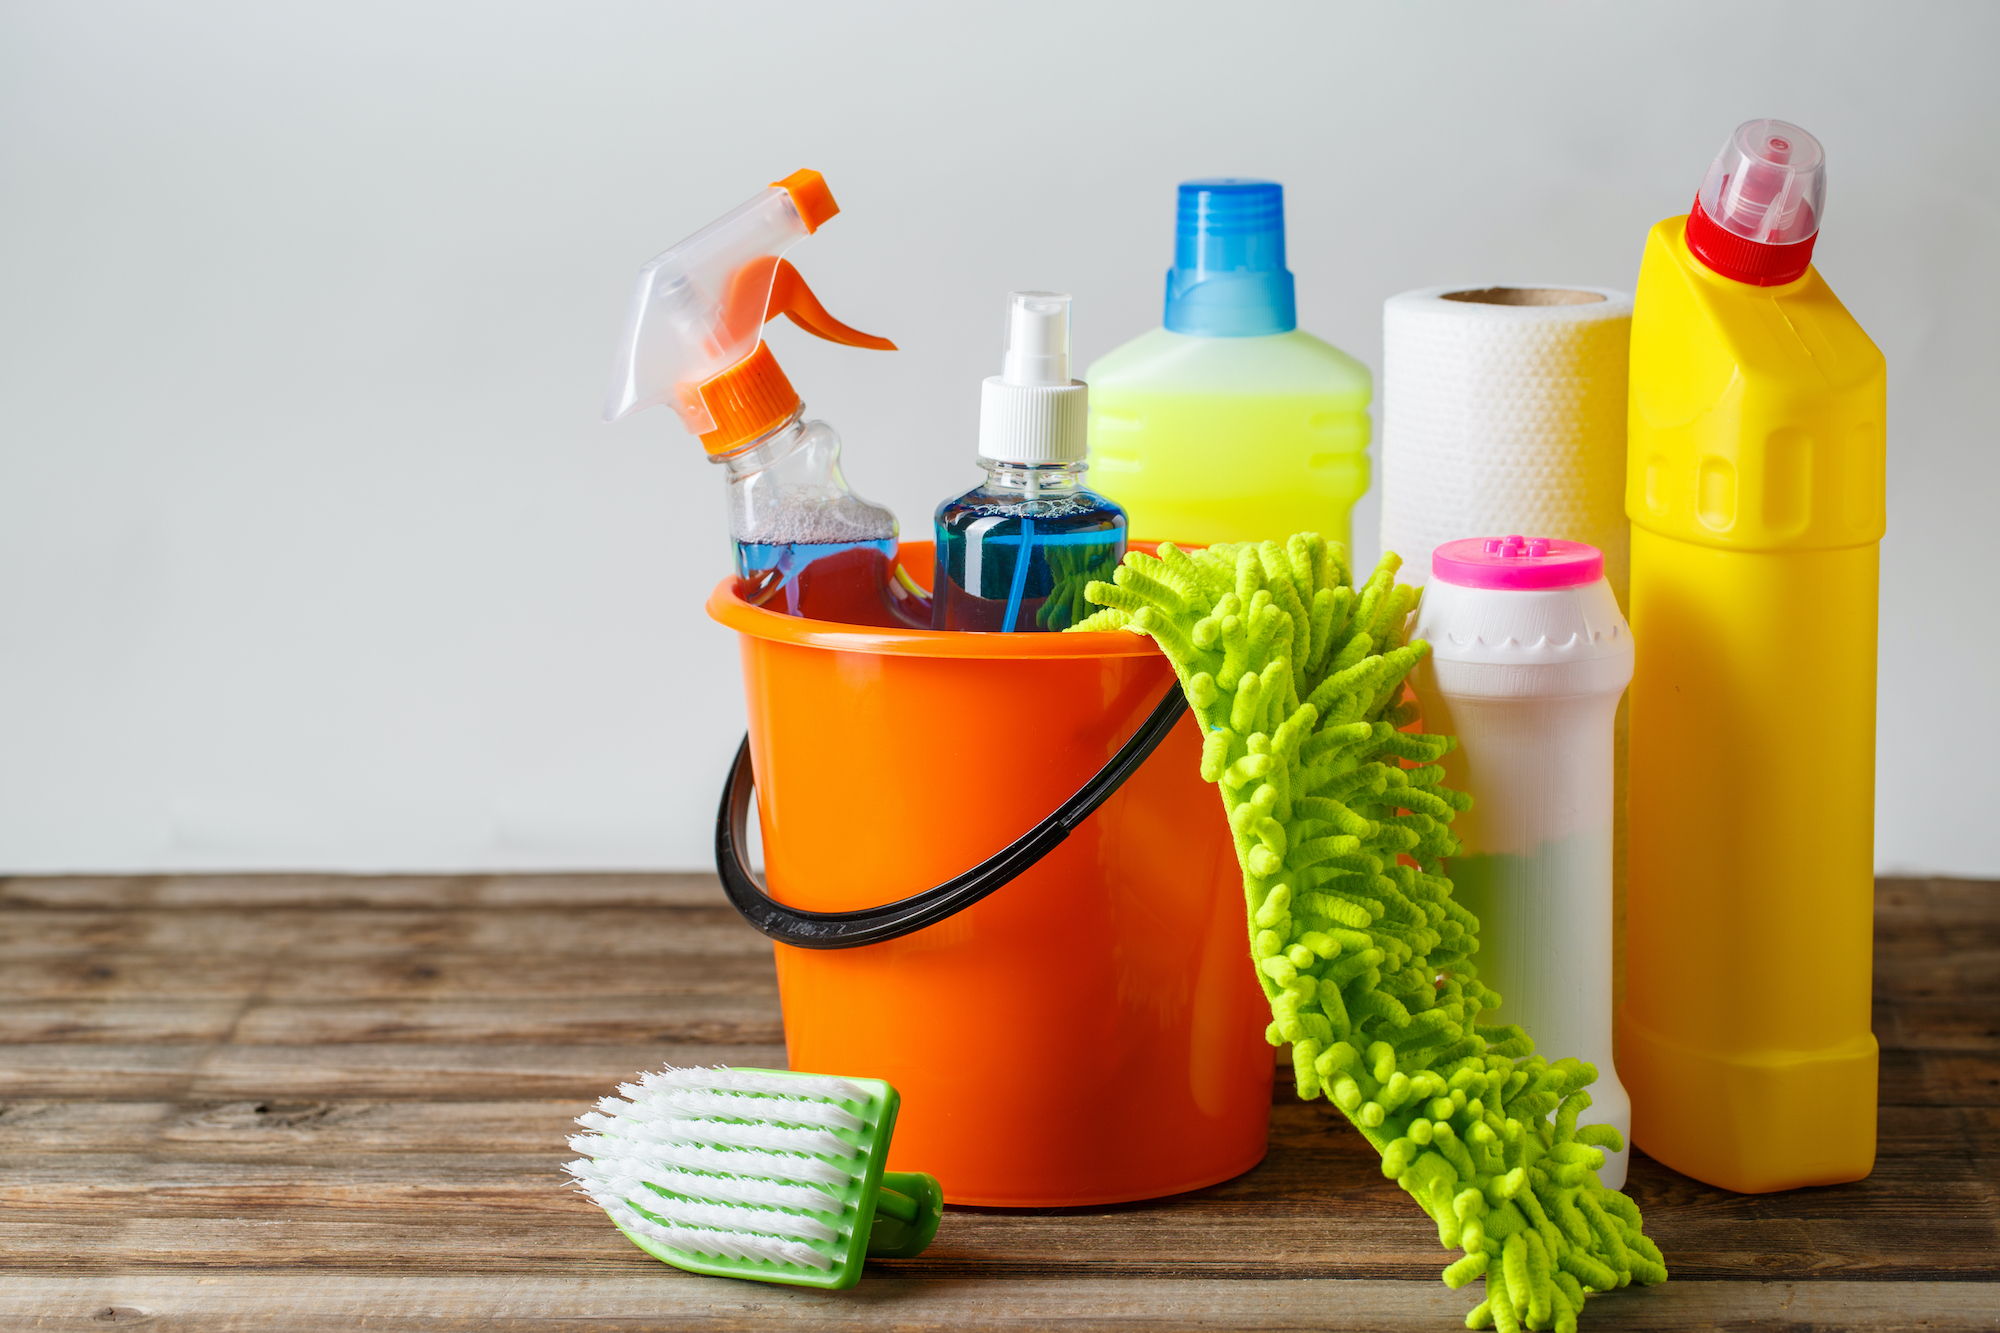 How Well Do You Know Your Cleaning Products?